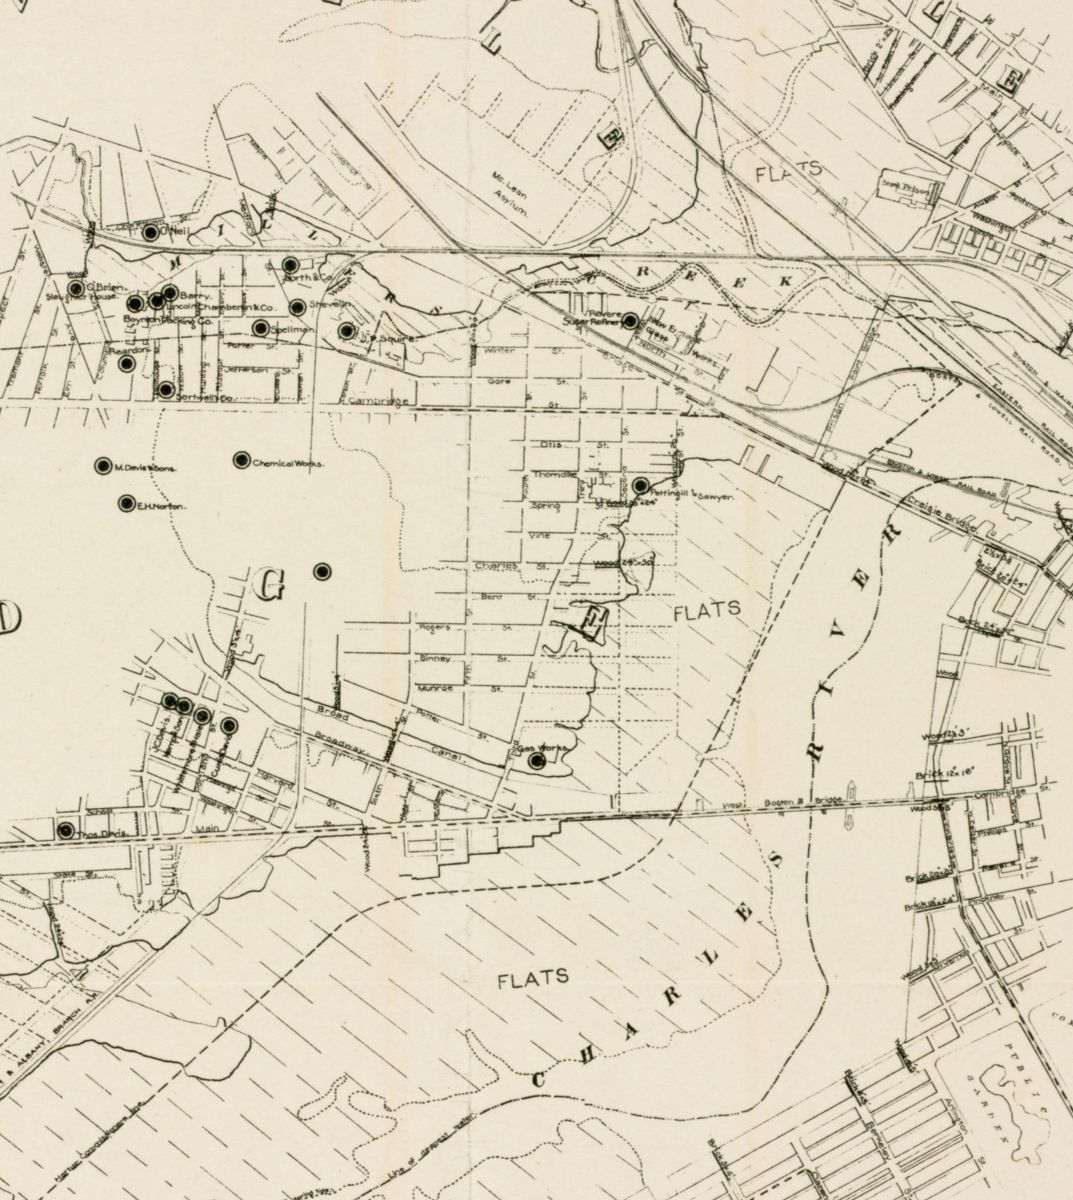 This 1873 plan shows how much of Cambridge and Somerville also lies on fill, though the tax parcels of these cities weren't included in this analysis